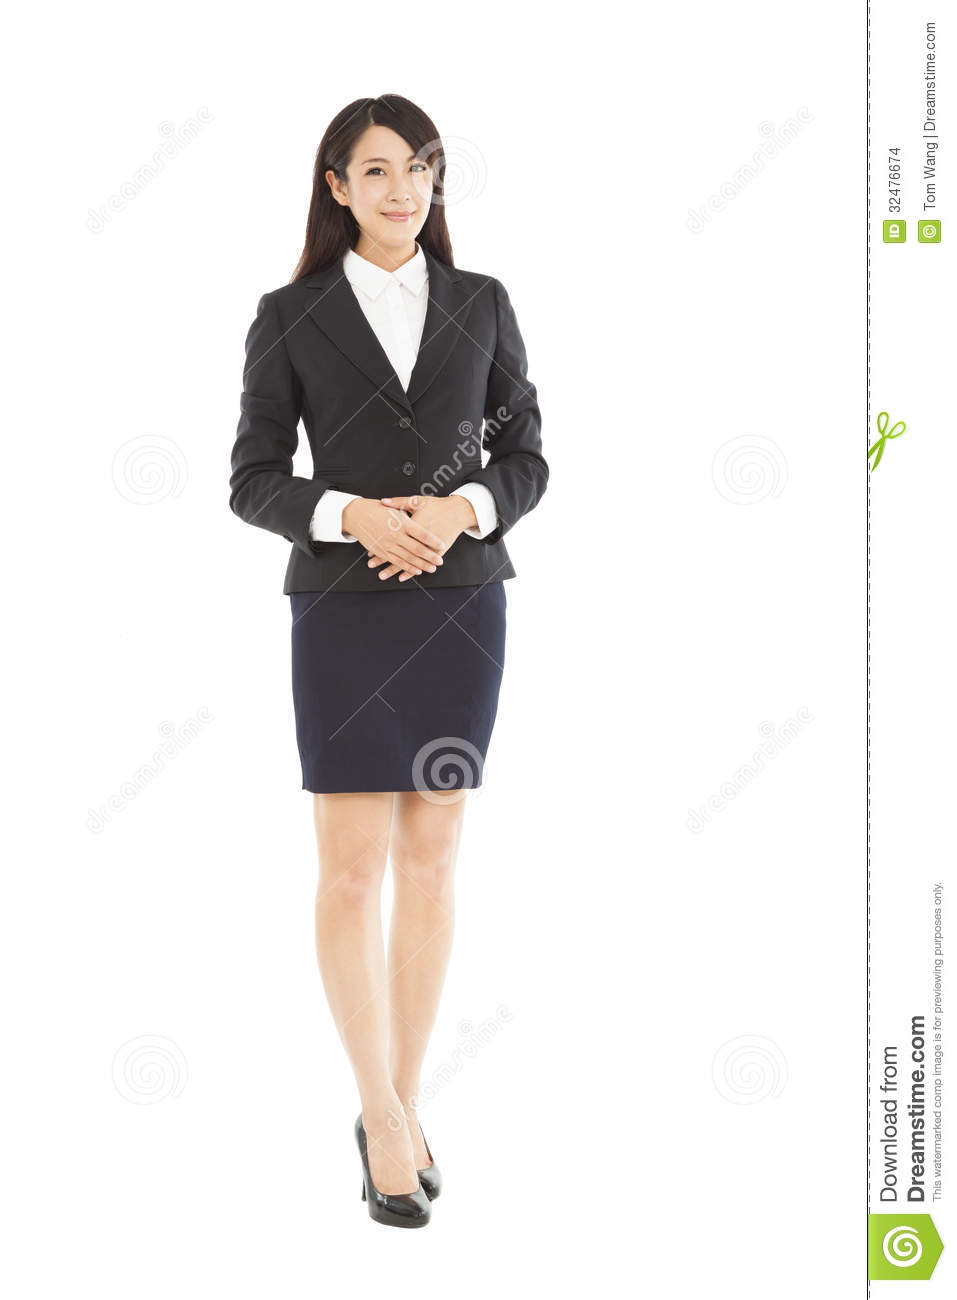 beautiful-business-woman-standing-full-length-businesswoman-32476674.jpg